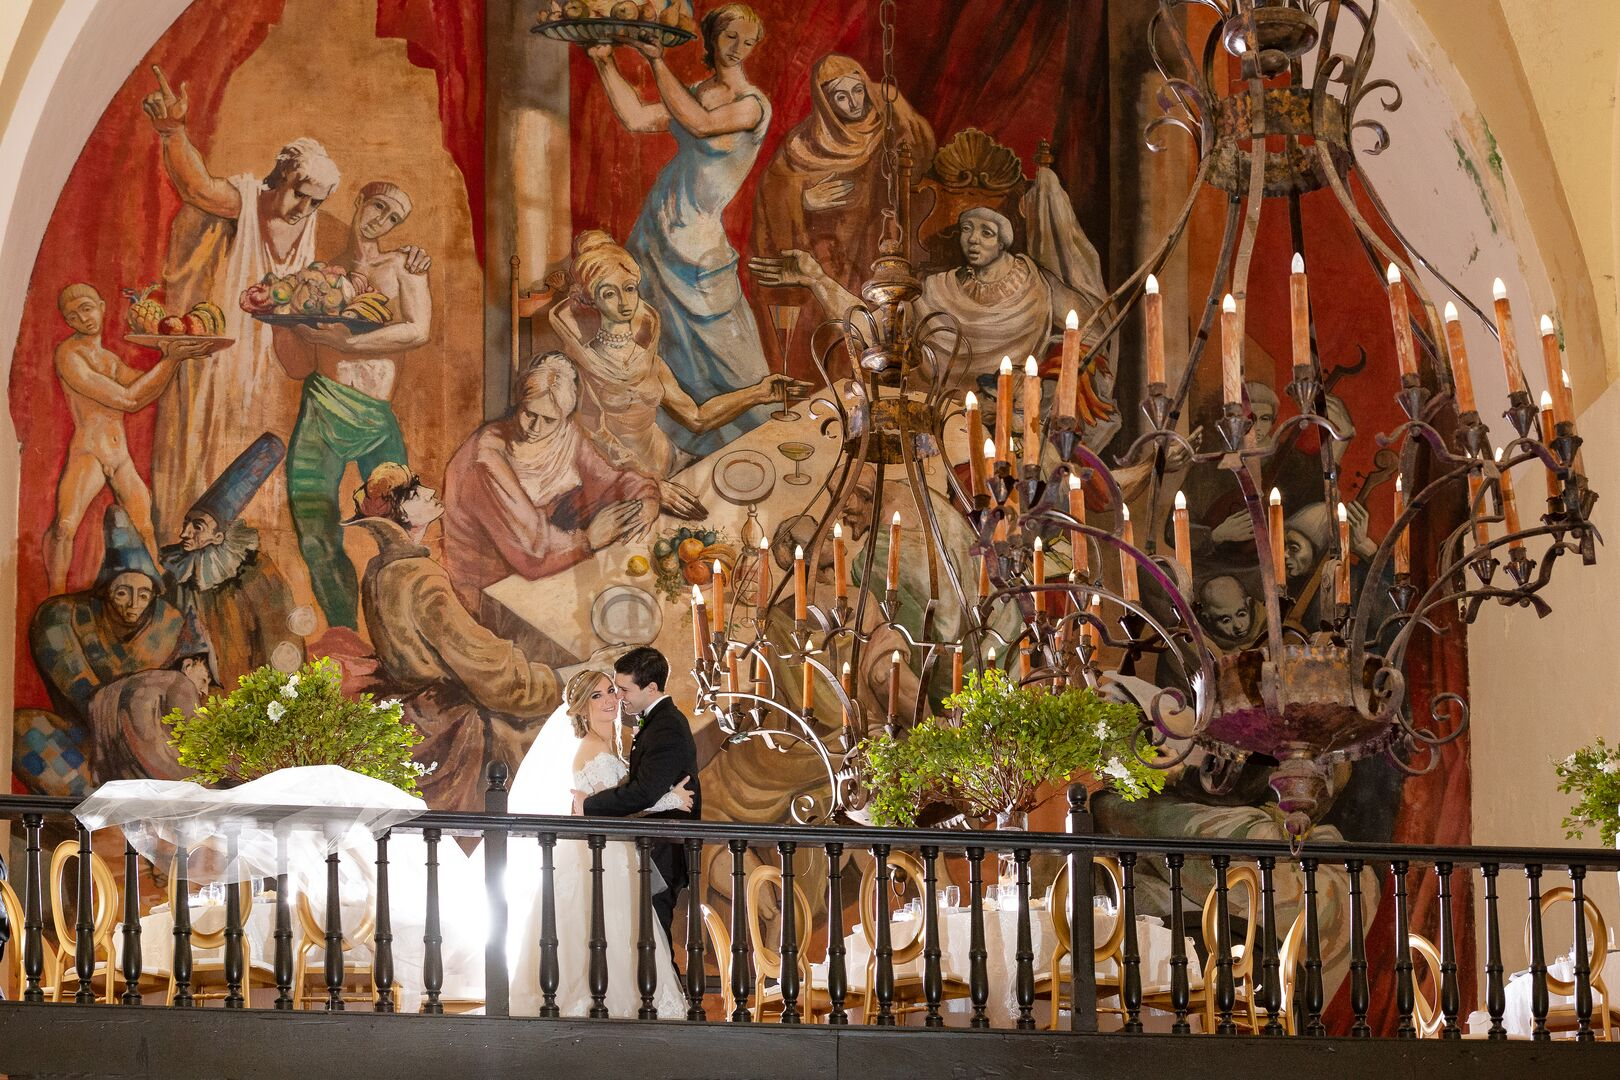 wedding couple in el convento hotel mural